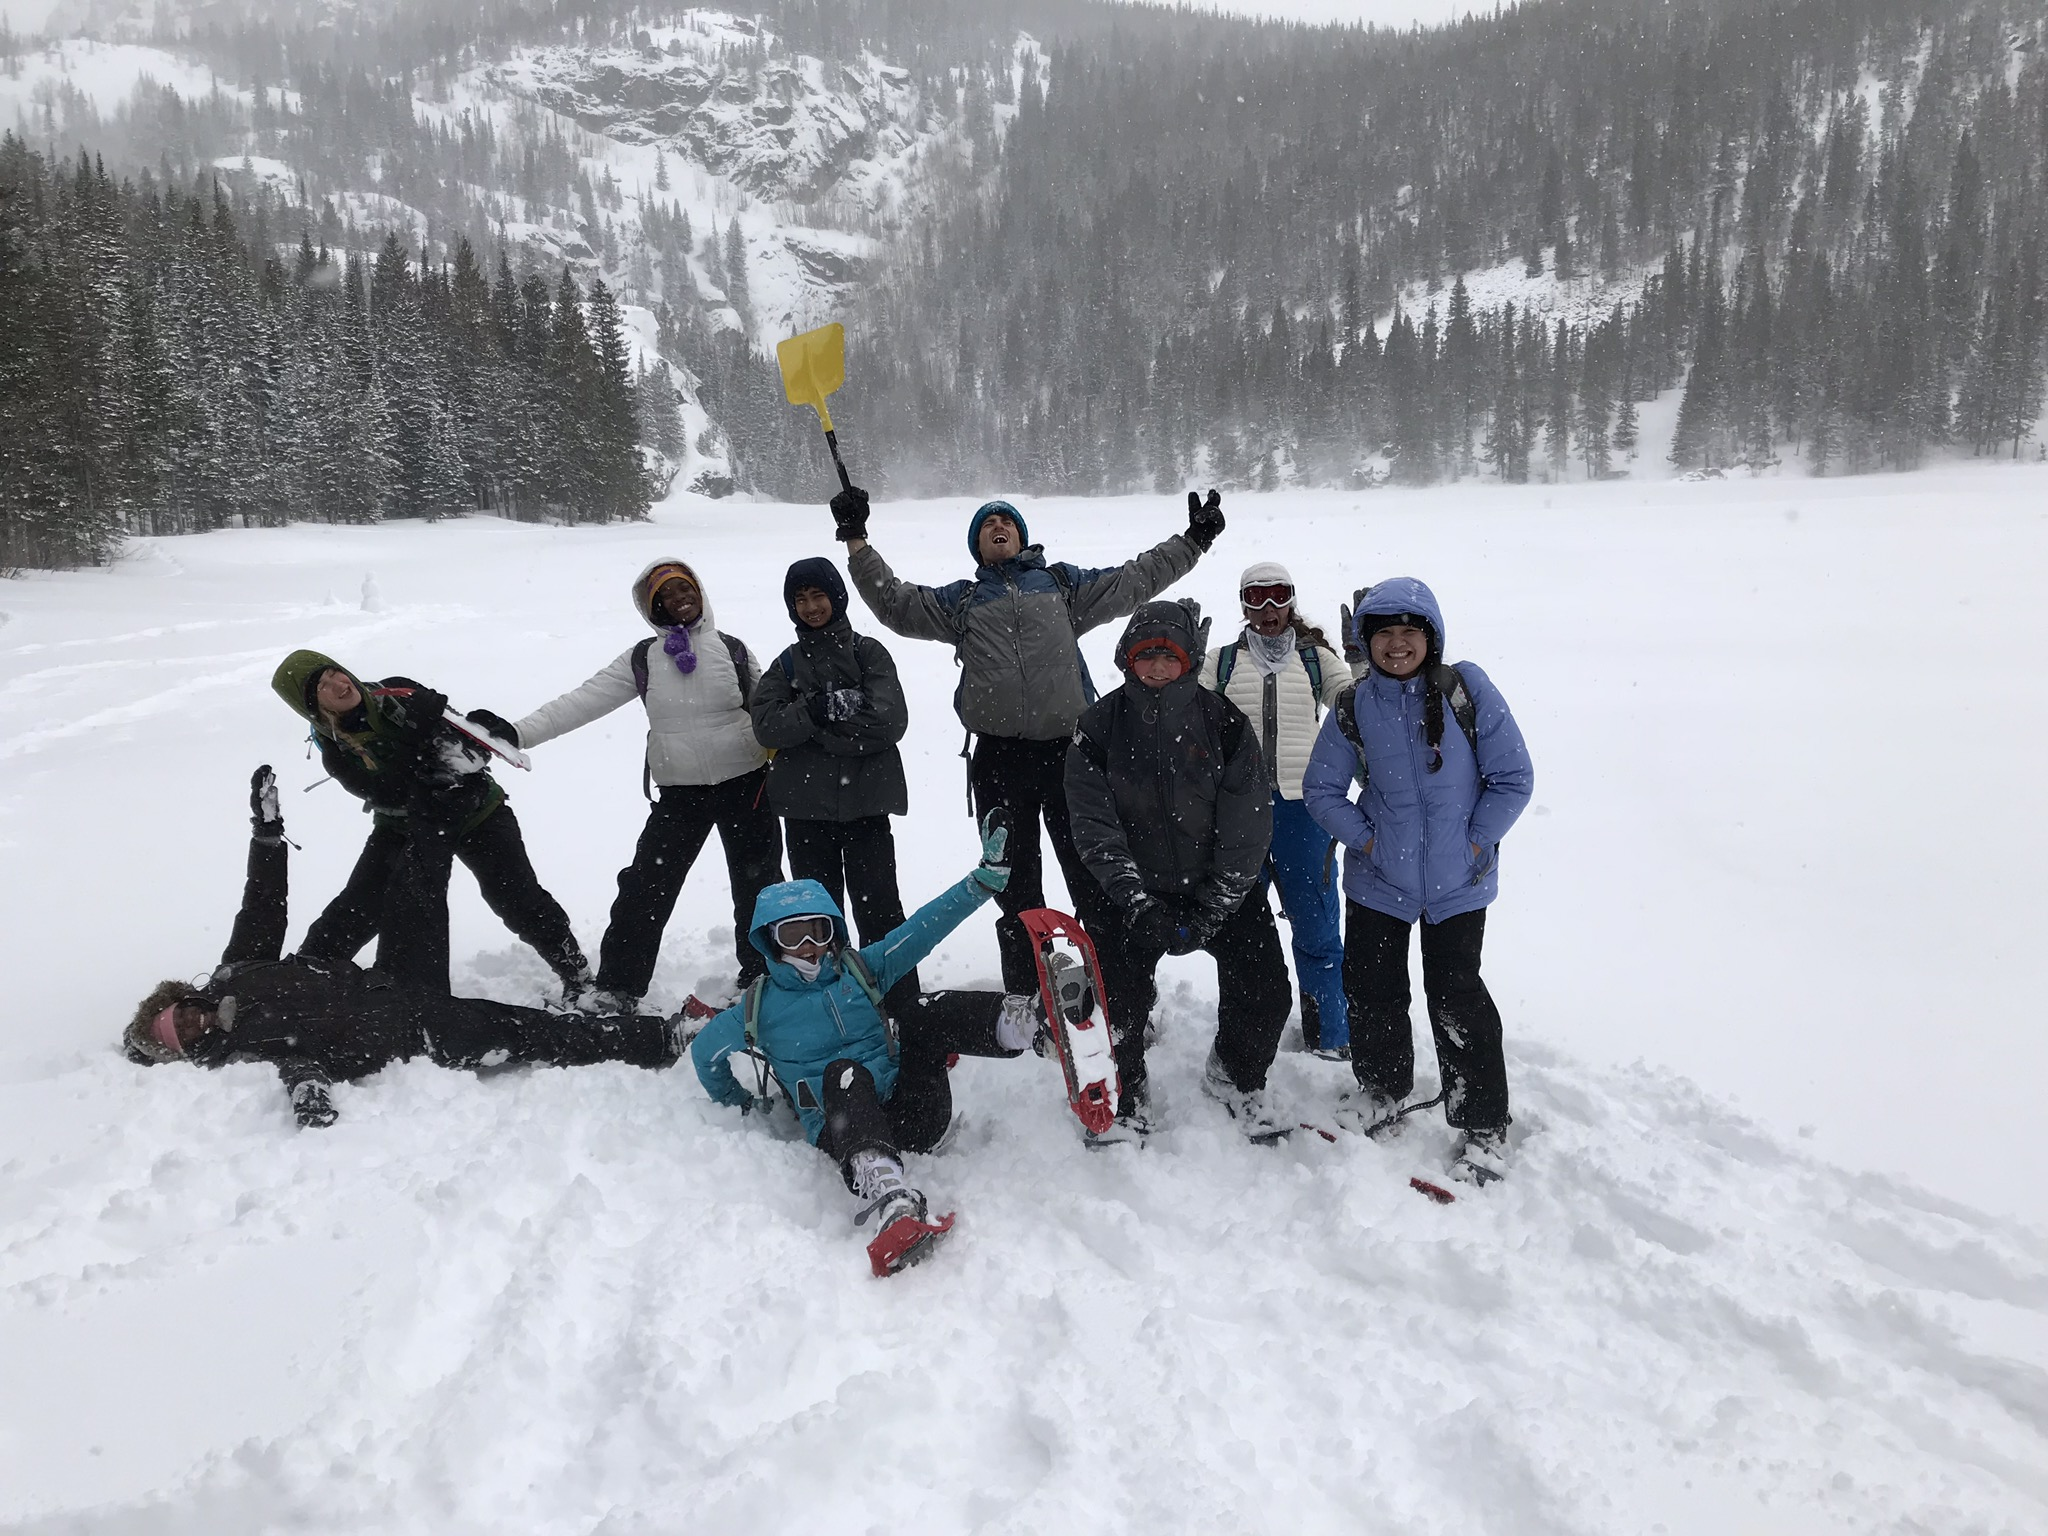 Teens serving their community and having fun in the snow.